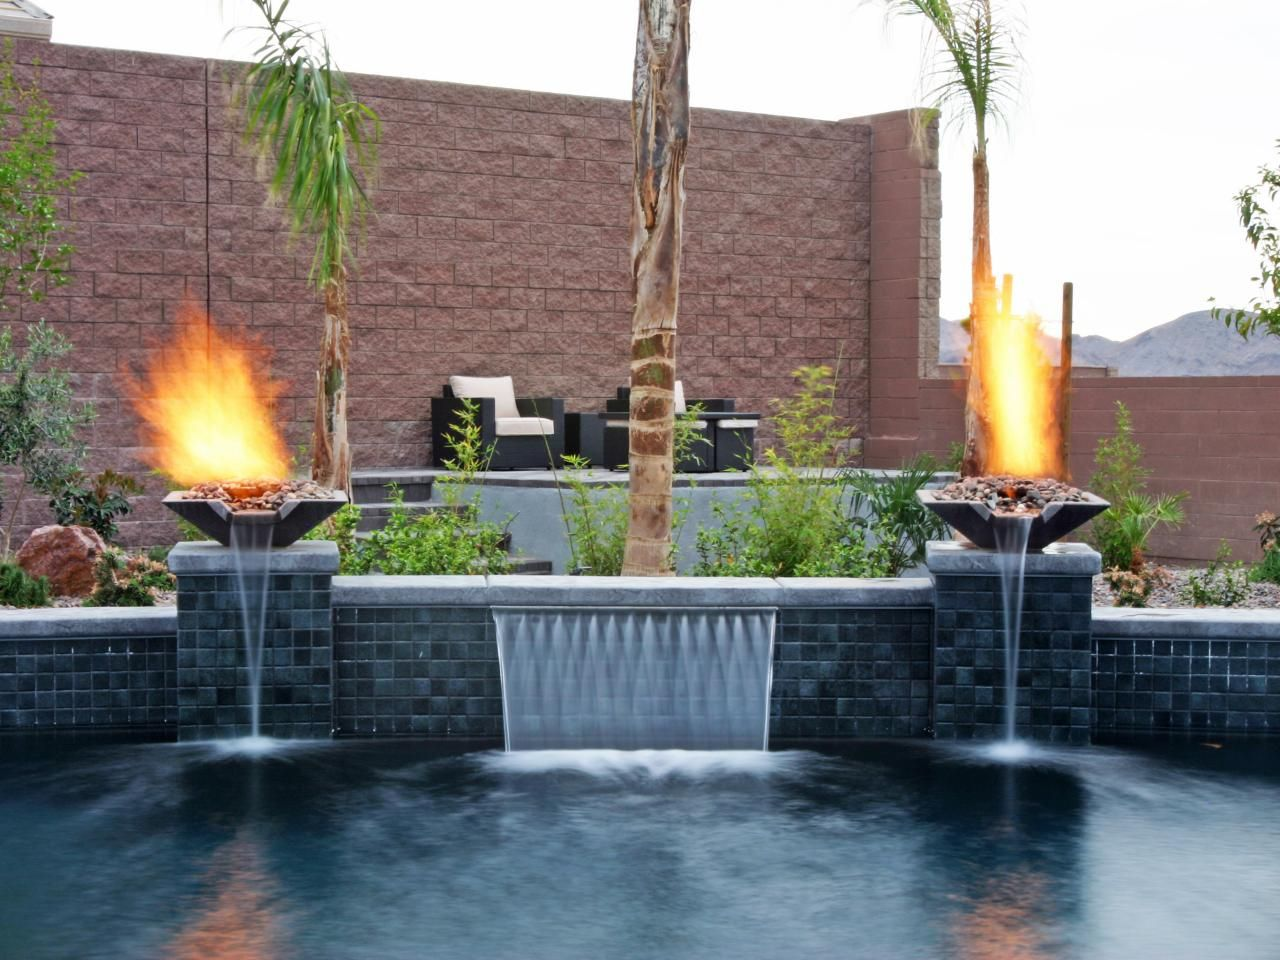 Pool Waterfall Ideas best pool waterfalls ideas for your swimming Surrounded By Palm Trees Fire And A Small Waterfall This Stunning Pool Is Simply